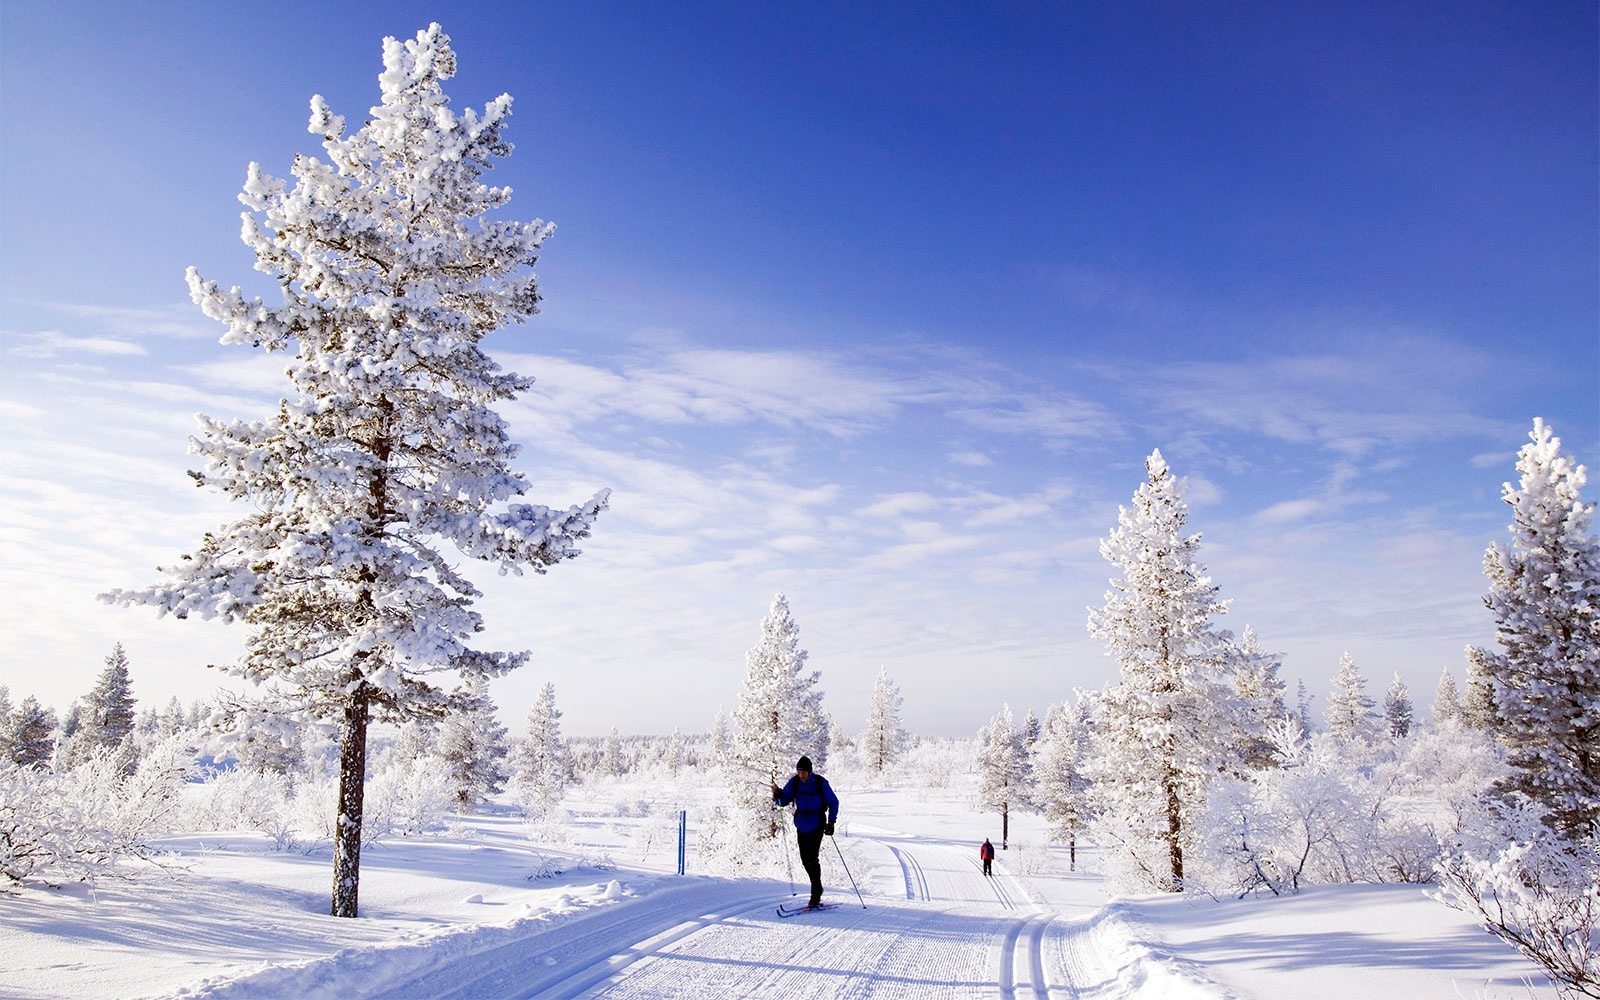 201311-w-best-places-to-spend-christmas-lapland-finland